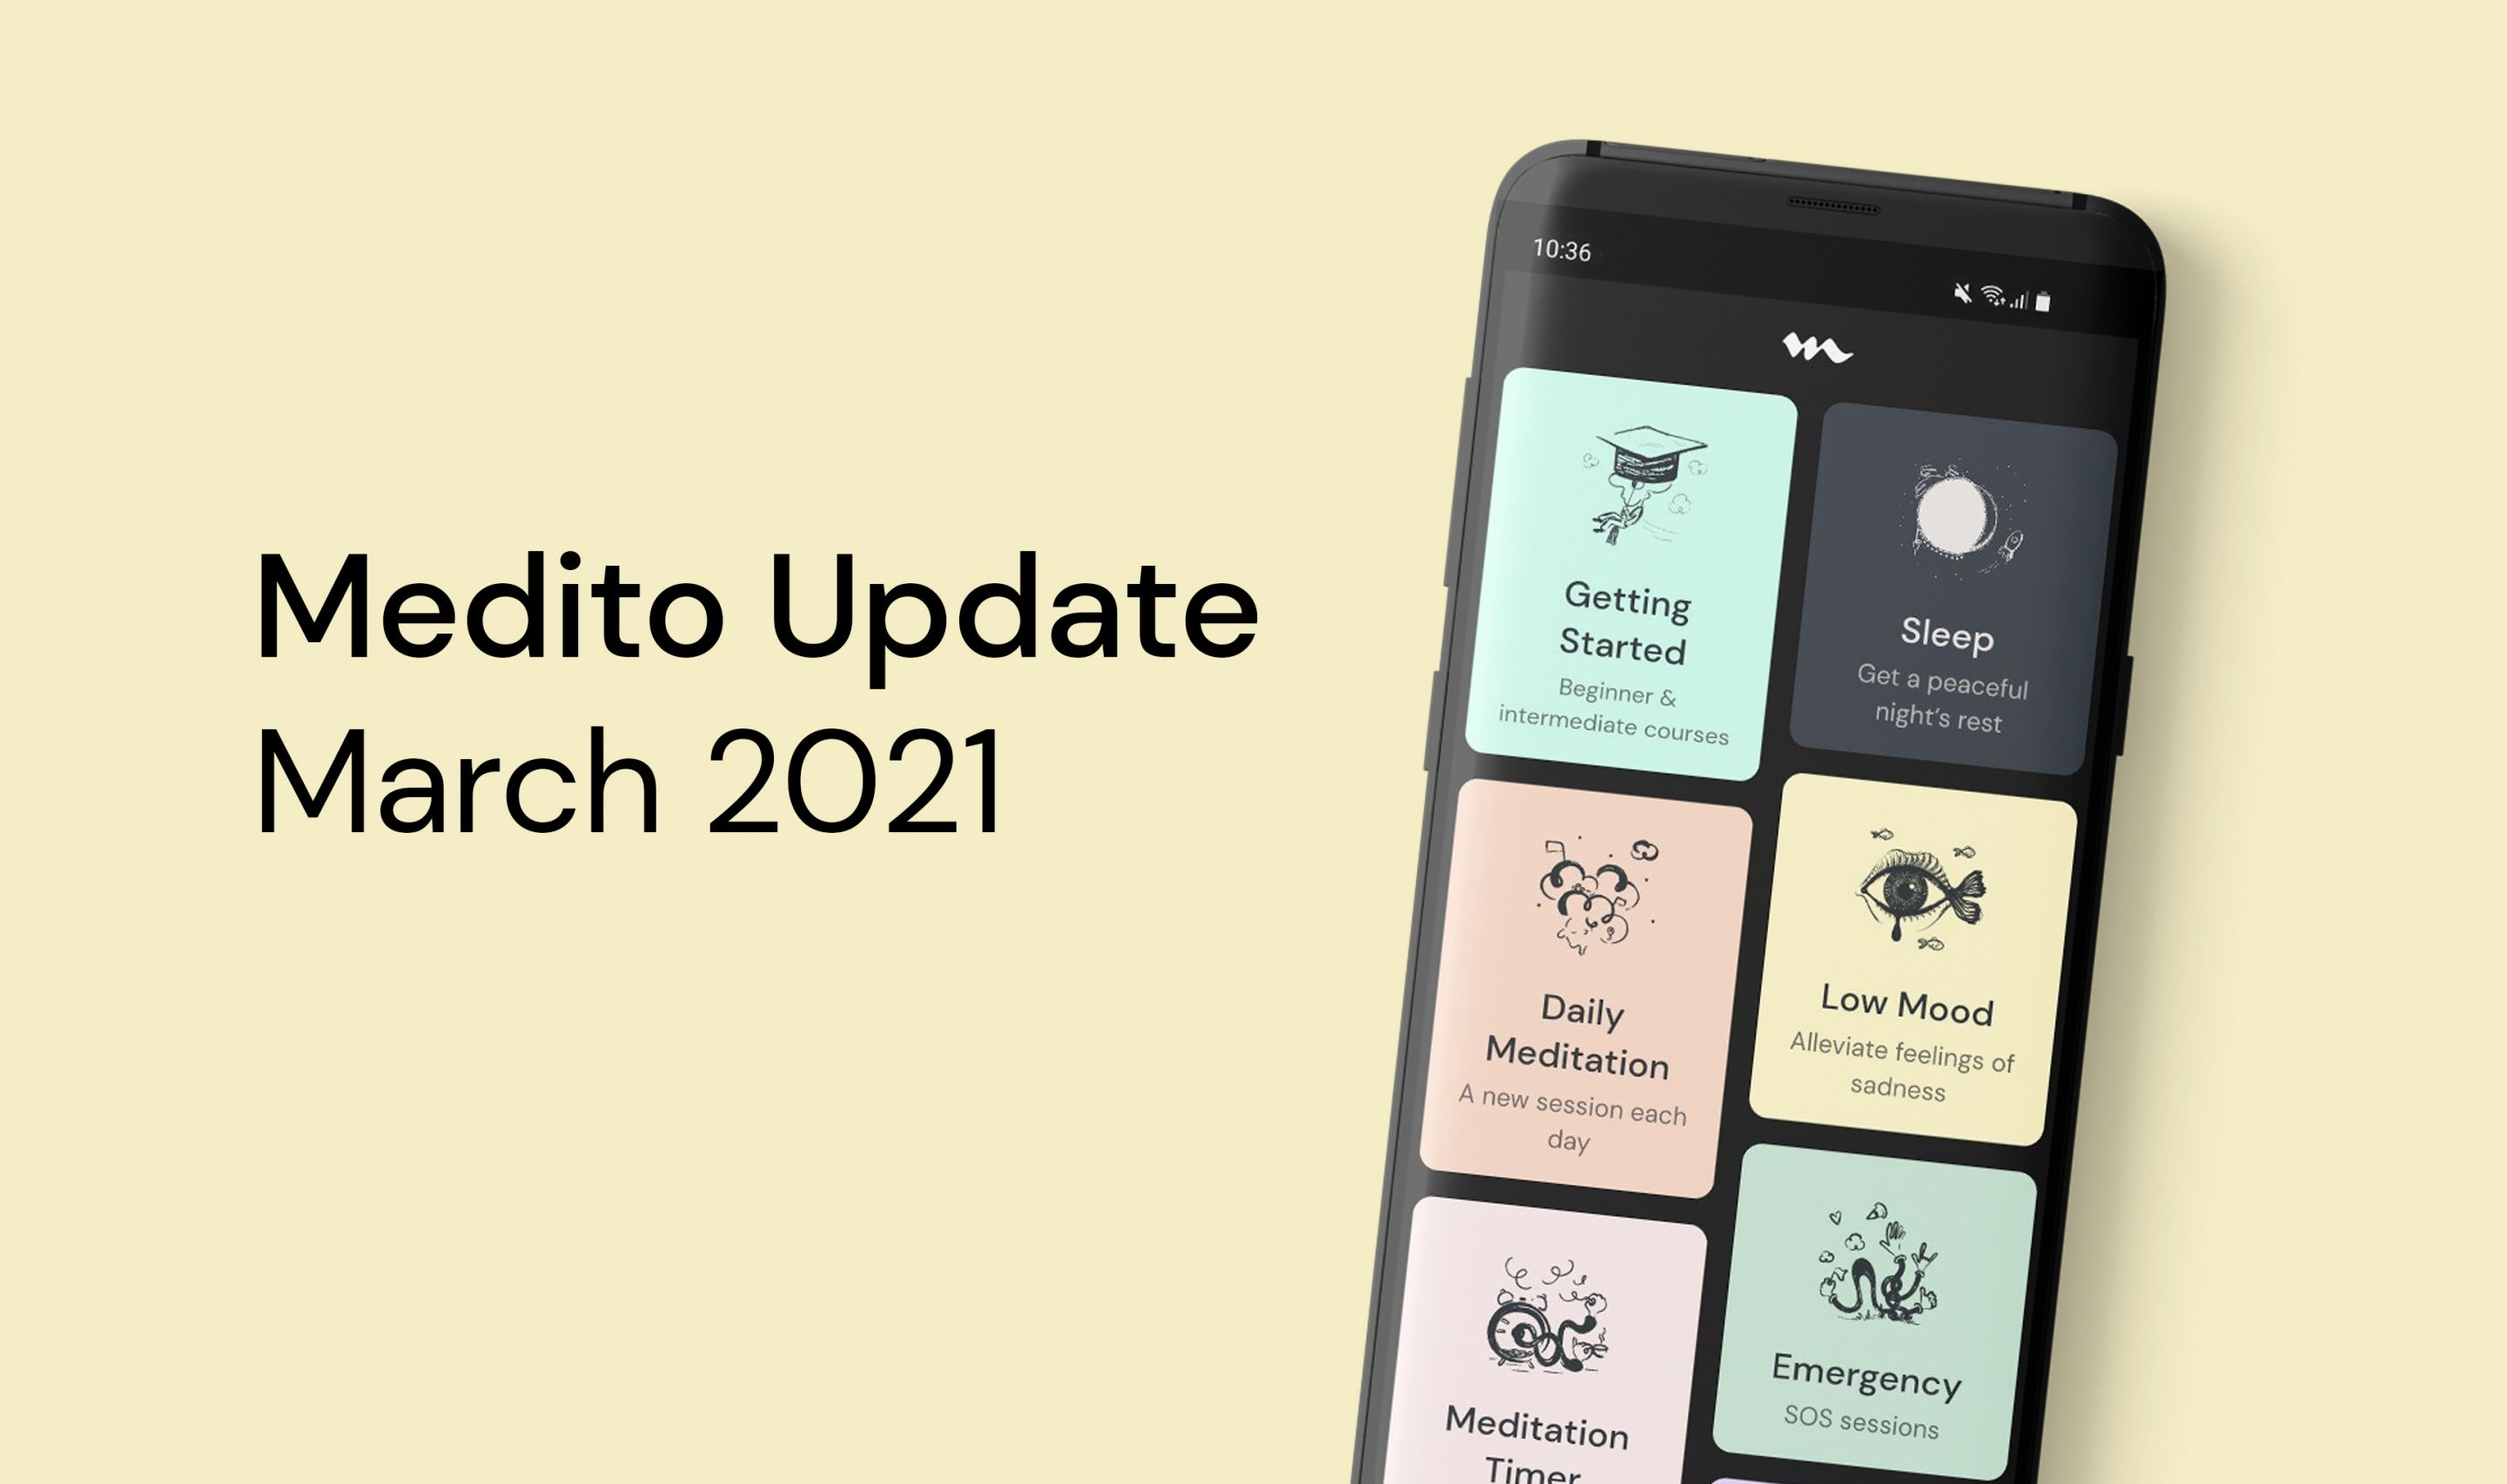 Medito Update - March 2021